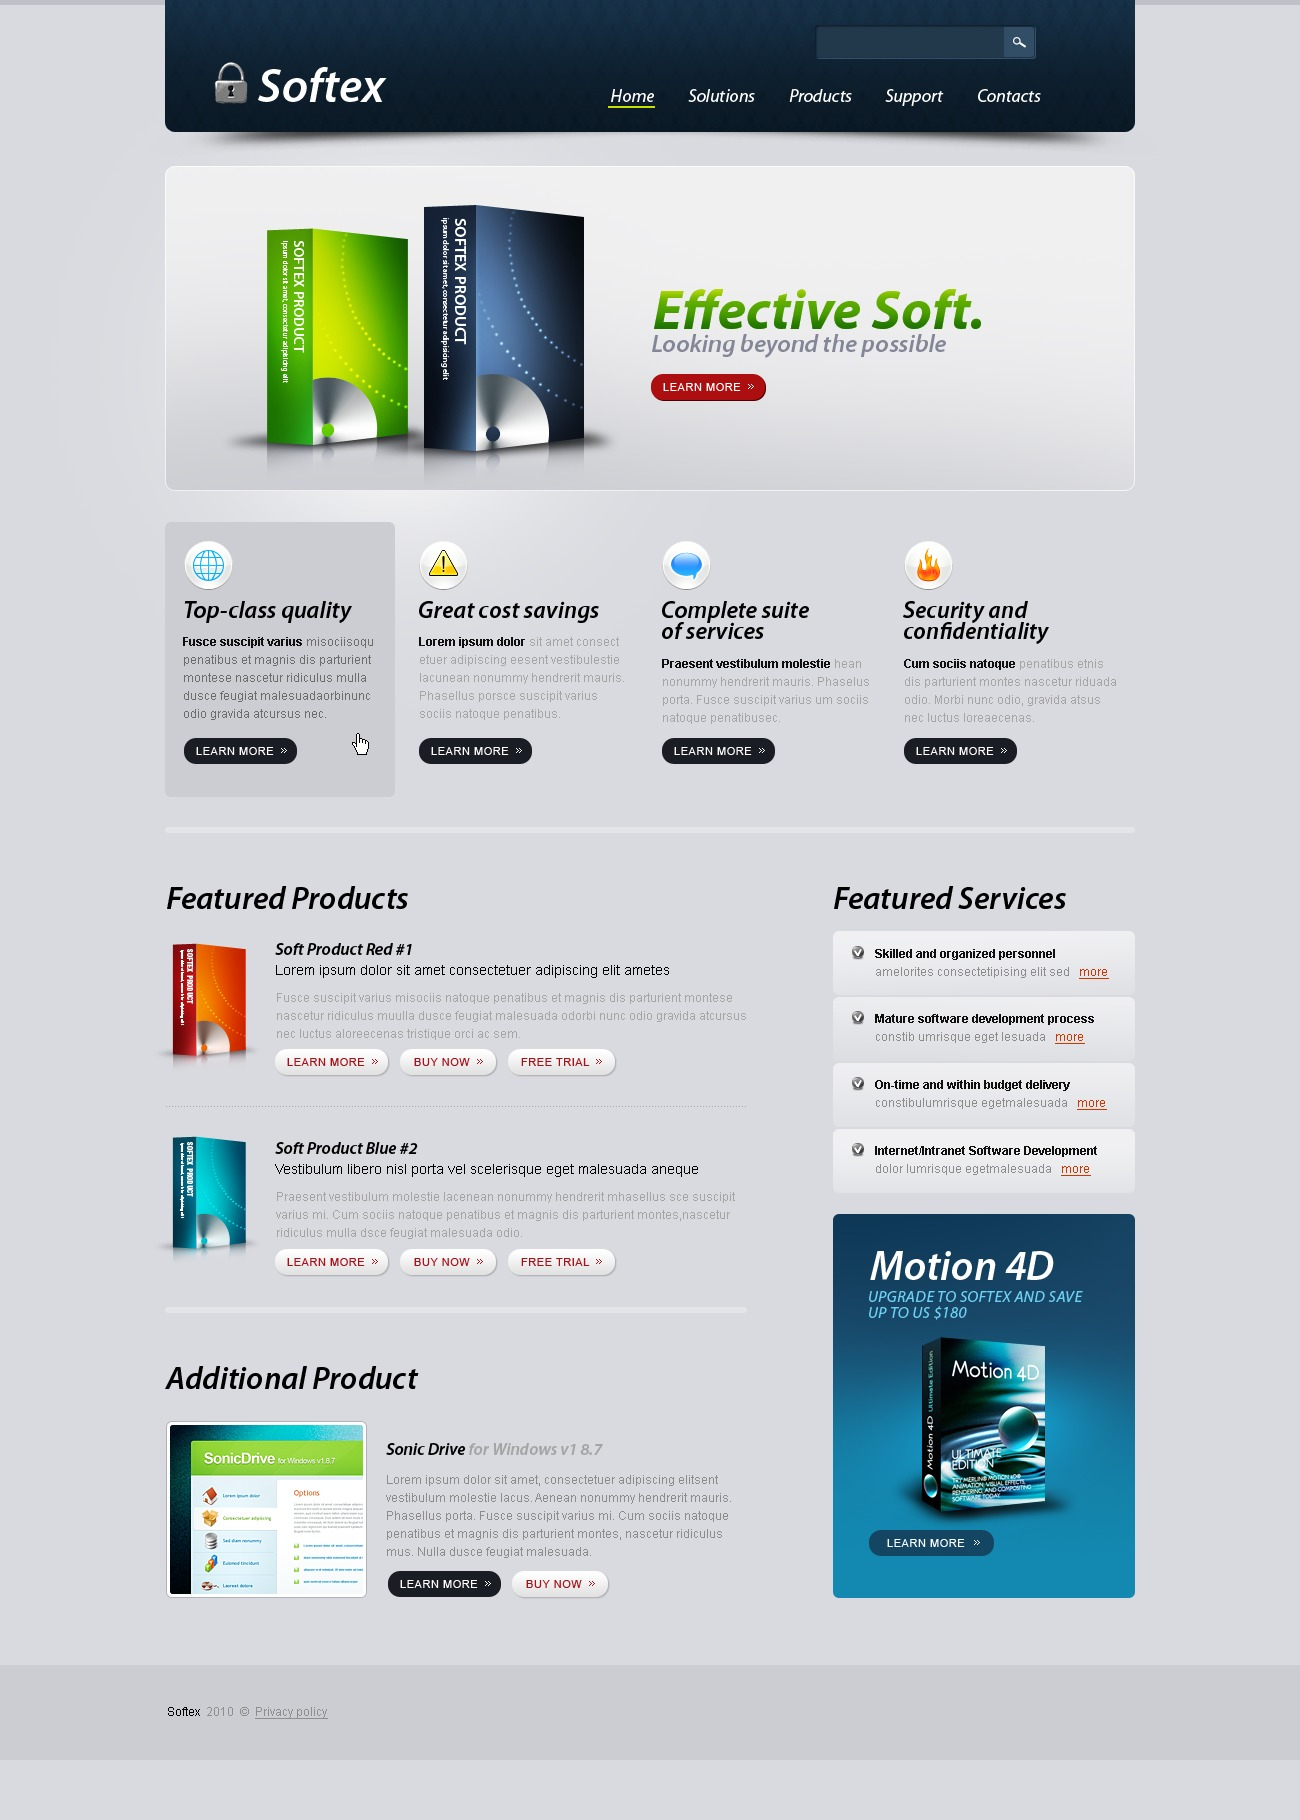 The Softex Software Company PSD Design 54506, one of the best PSD templates of its kind (software, most popular, wide), also known as softex software company PSD template, enterprise solution PSD template, business PSD template, industry PSD template, technical PSD template, clients PSD template, customer support PSD template, automate PSD template, flow PSD template, services PSD template, plug-in PSD template, flex PSD template, profile PSD template, principles PSD template, web products PSD template, technology system and related with softex software company, enterprise solution, business, industry, technical, clients, customer support, automate, flow, services, plug-in, flex, profile, principles, web products, technology system, etc.